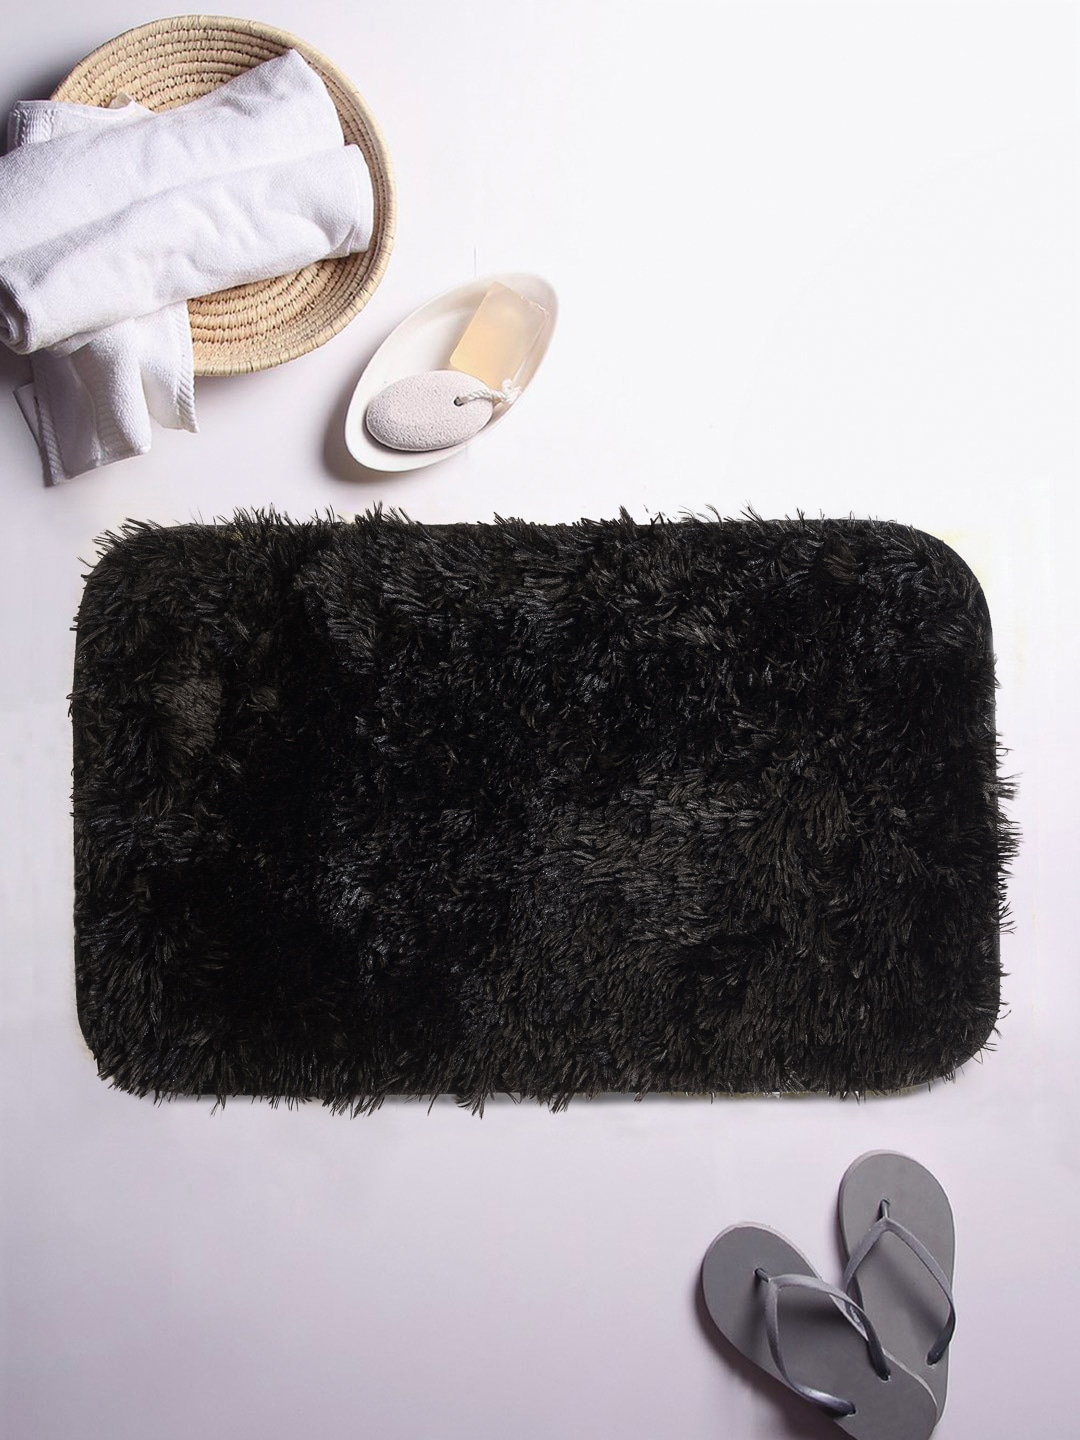 Cortina Black Patterned Rectangular Printed Bath Rug image